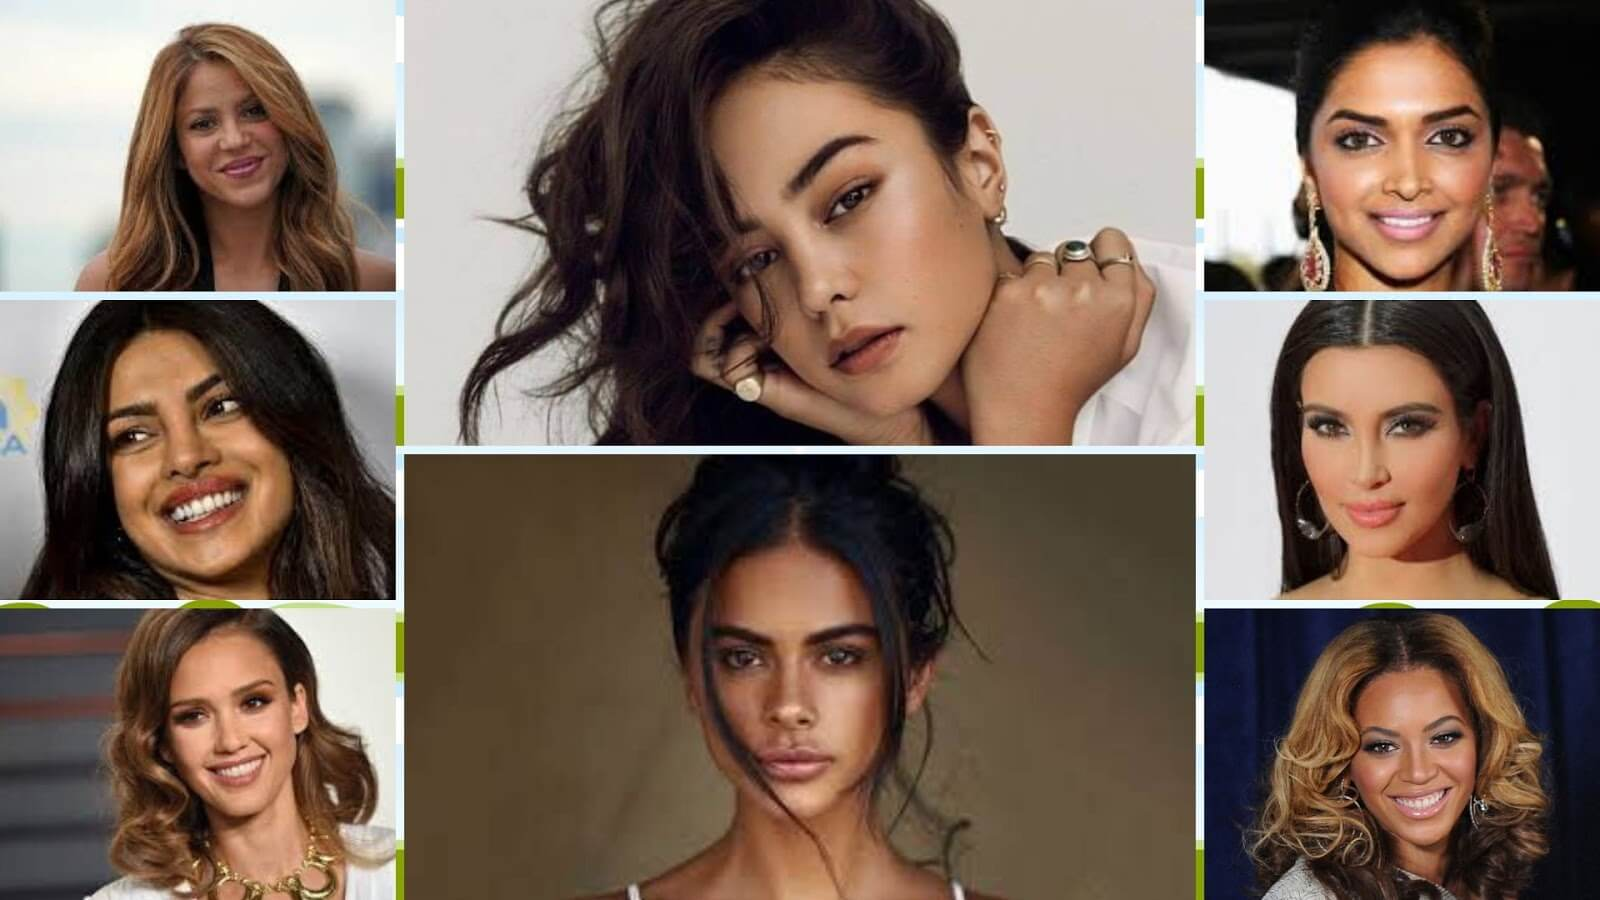 Some famous olive skin women